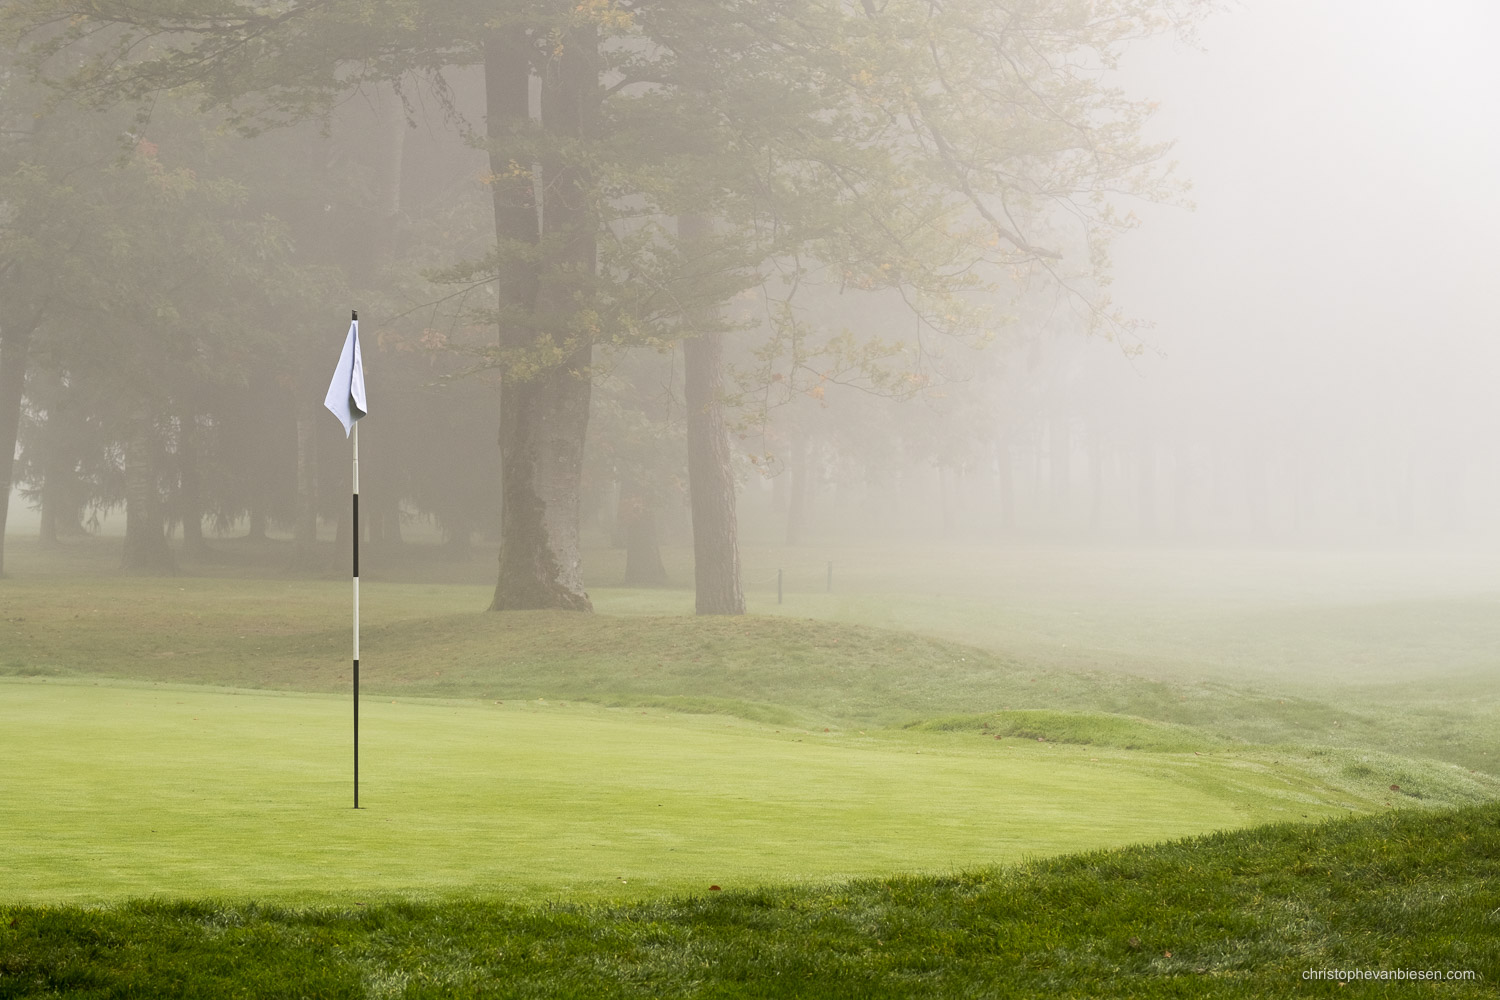 Work with me - Commission Work - Golf Club Grand Ducal Luxembourg Senningerberg - Hole 2 - Photography by Christophe Van Biesen - Luxembourg Landscape and Travel Photographer